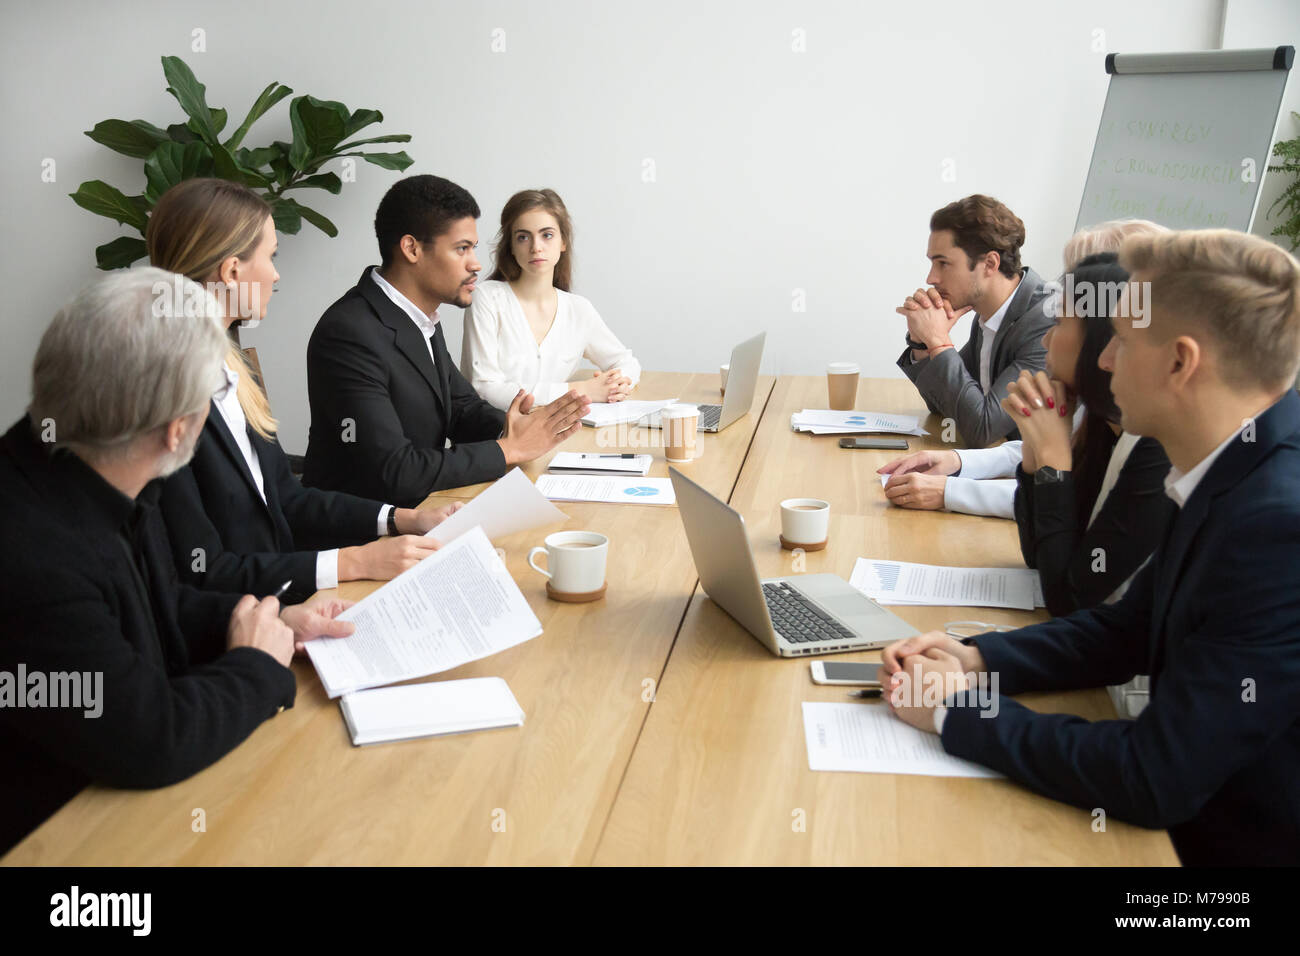 Focused black team leader talking to colleagues at group meeting - Stock Image